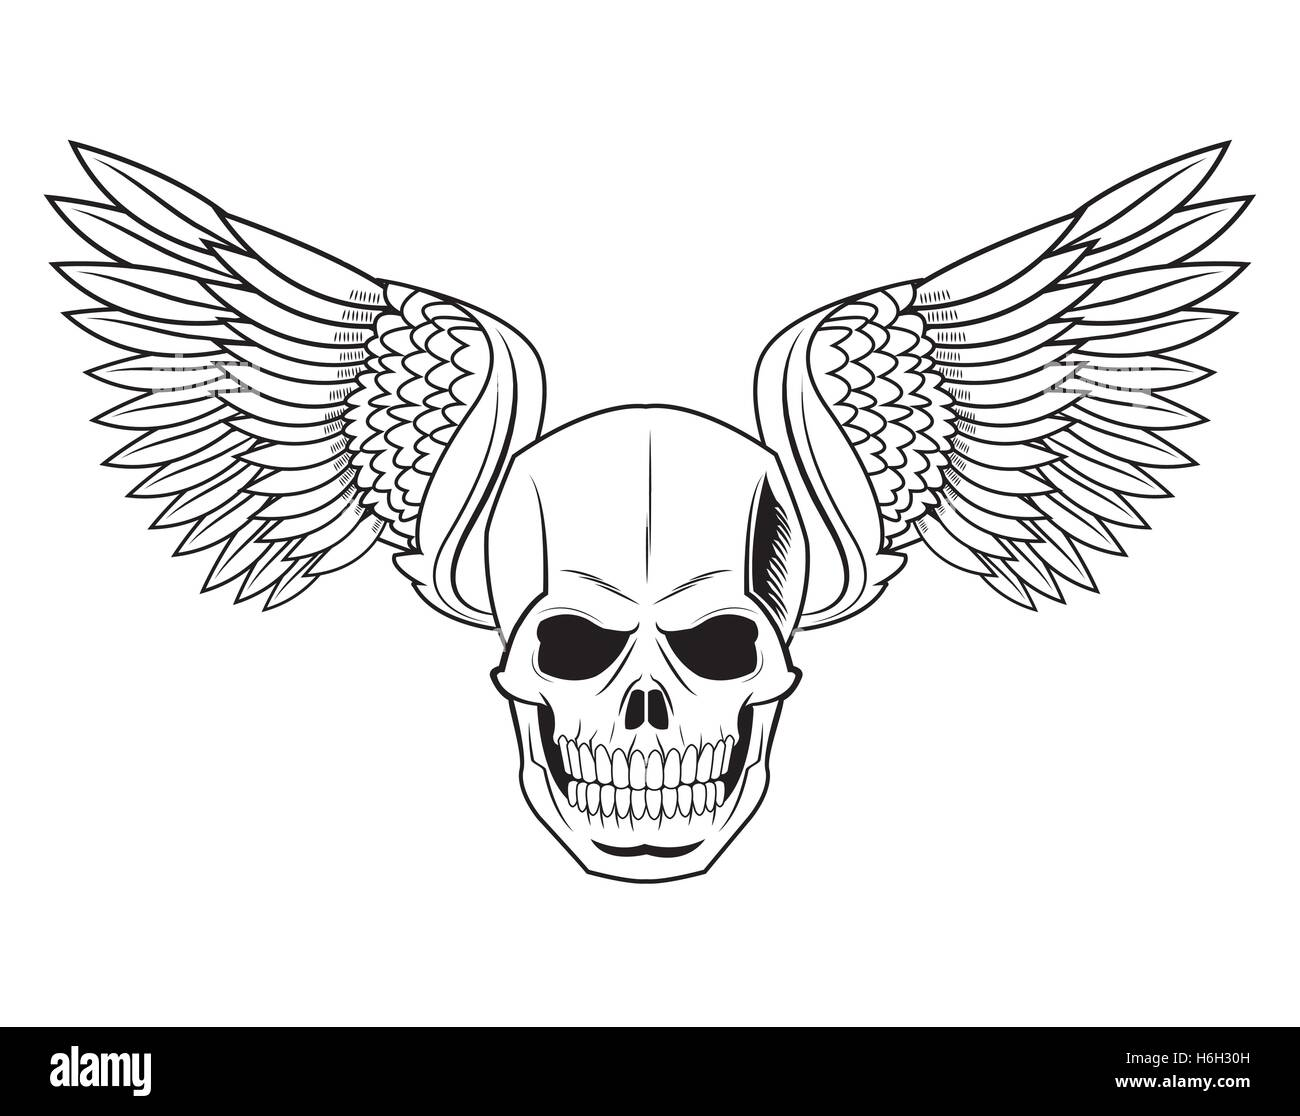 Skull And Wings Tattoo High Resolution Stock Photography And Images Alamy